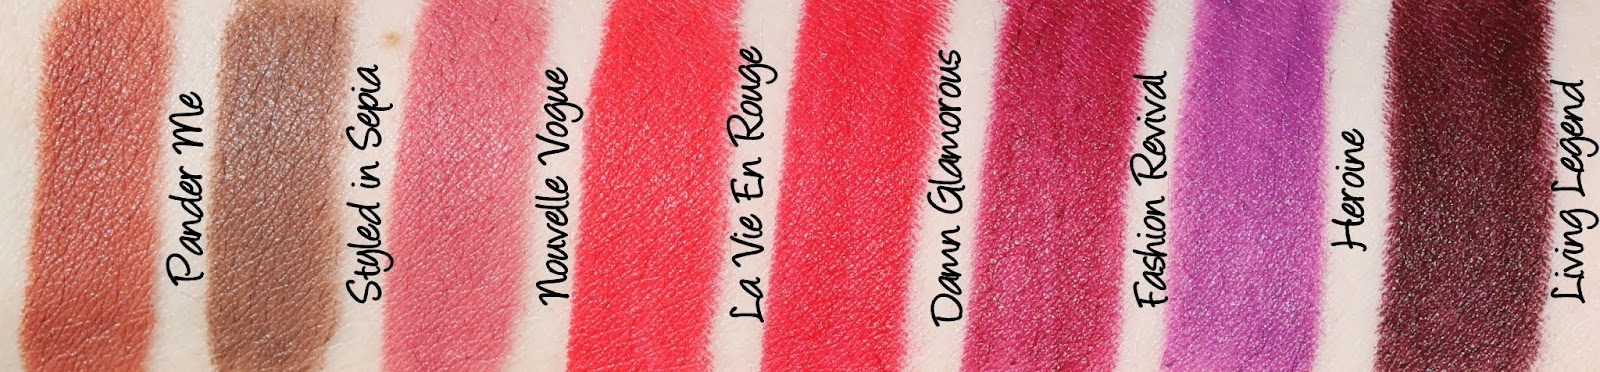 MAC Monday: The Matte Lip Lipsticks Swatches & Review